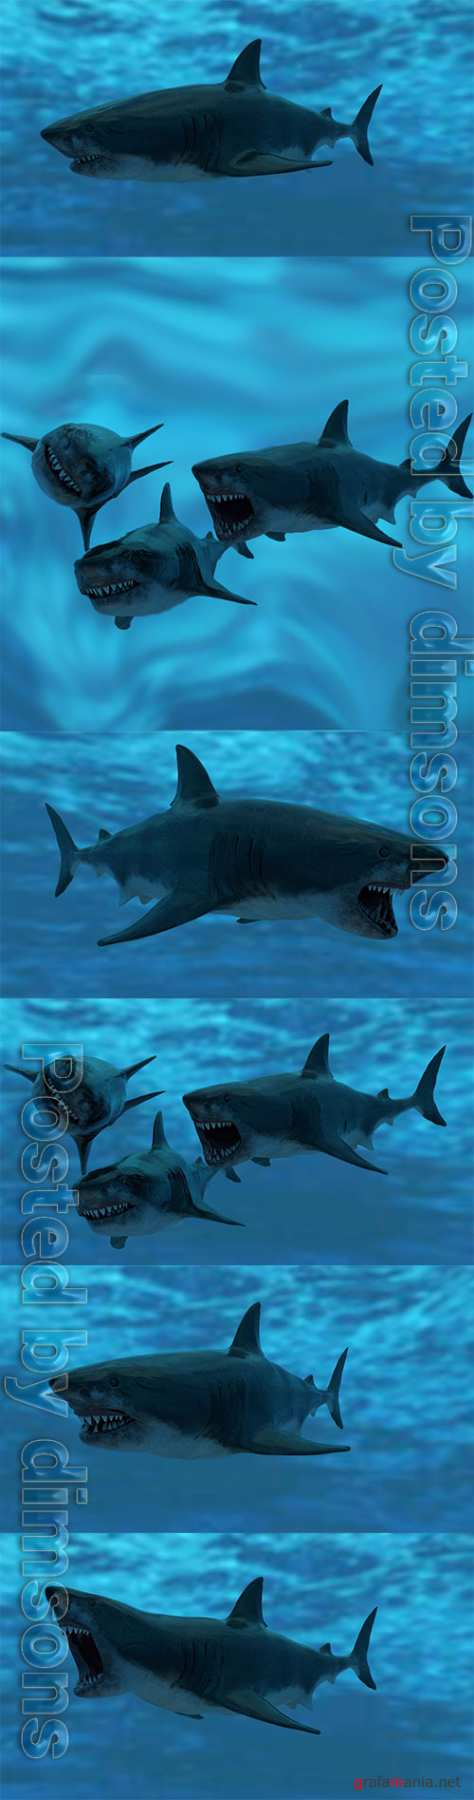 Great White Shark Model Unreal Engine 4 7 animations Pack Low-poly 3D model